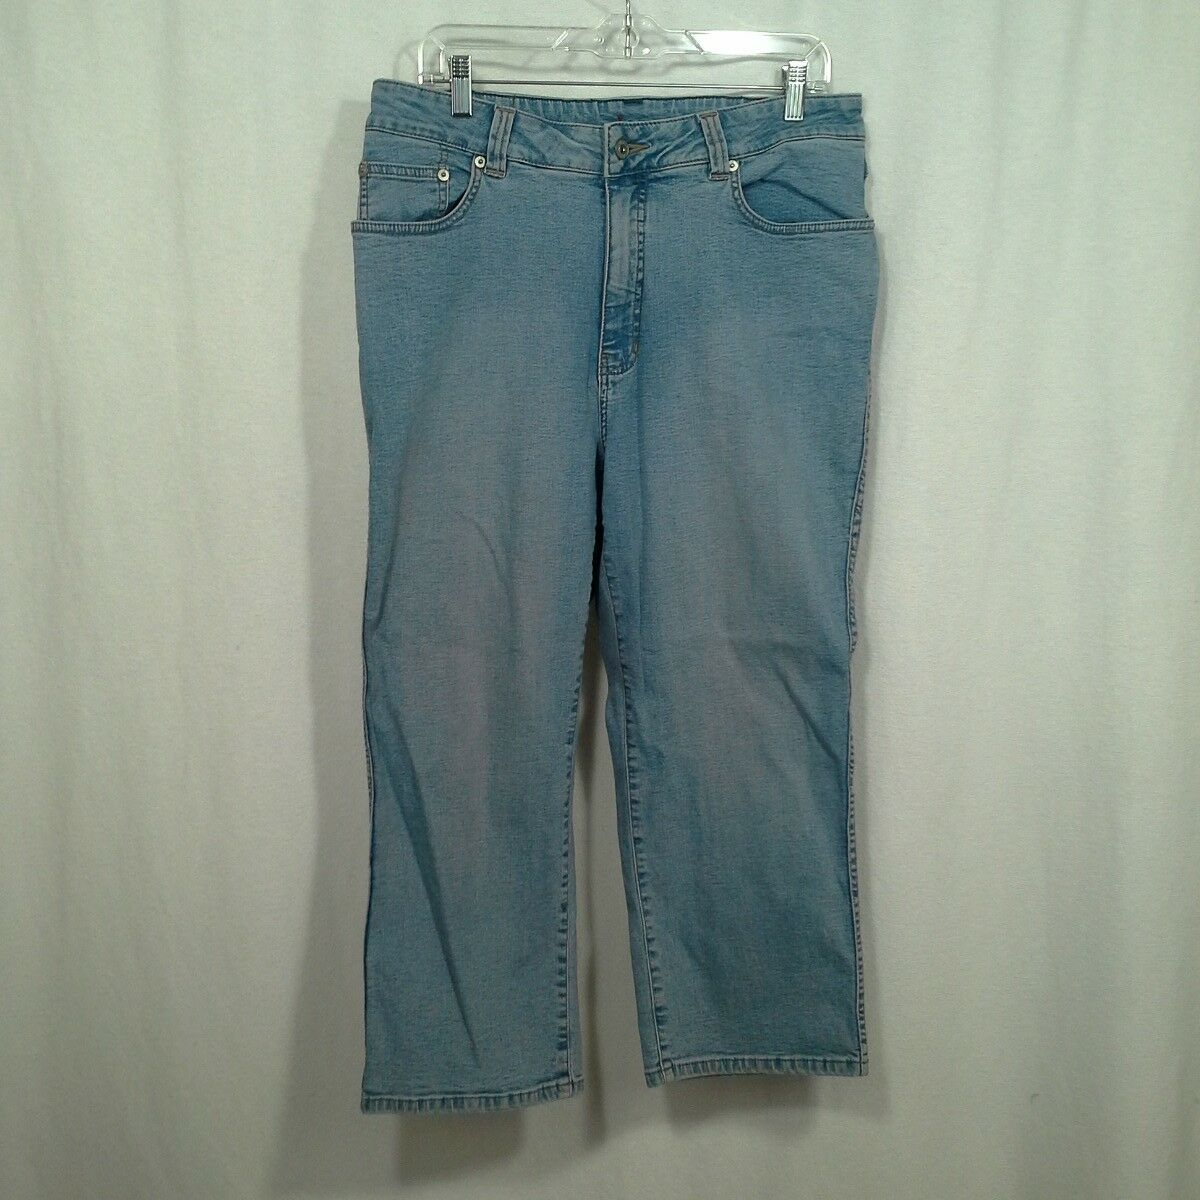 Jag womens jeans Size 14W short Light bluee wash Straight leg Stretch